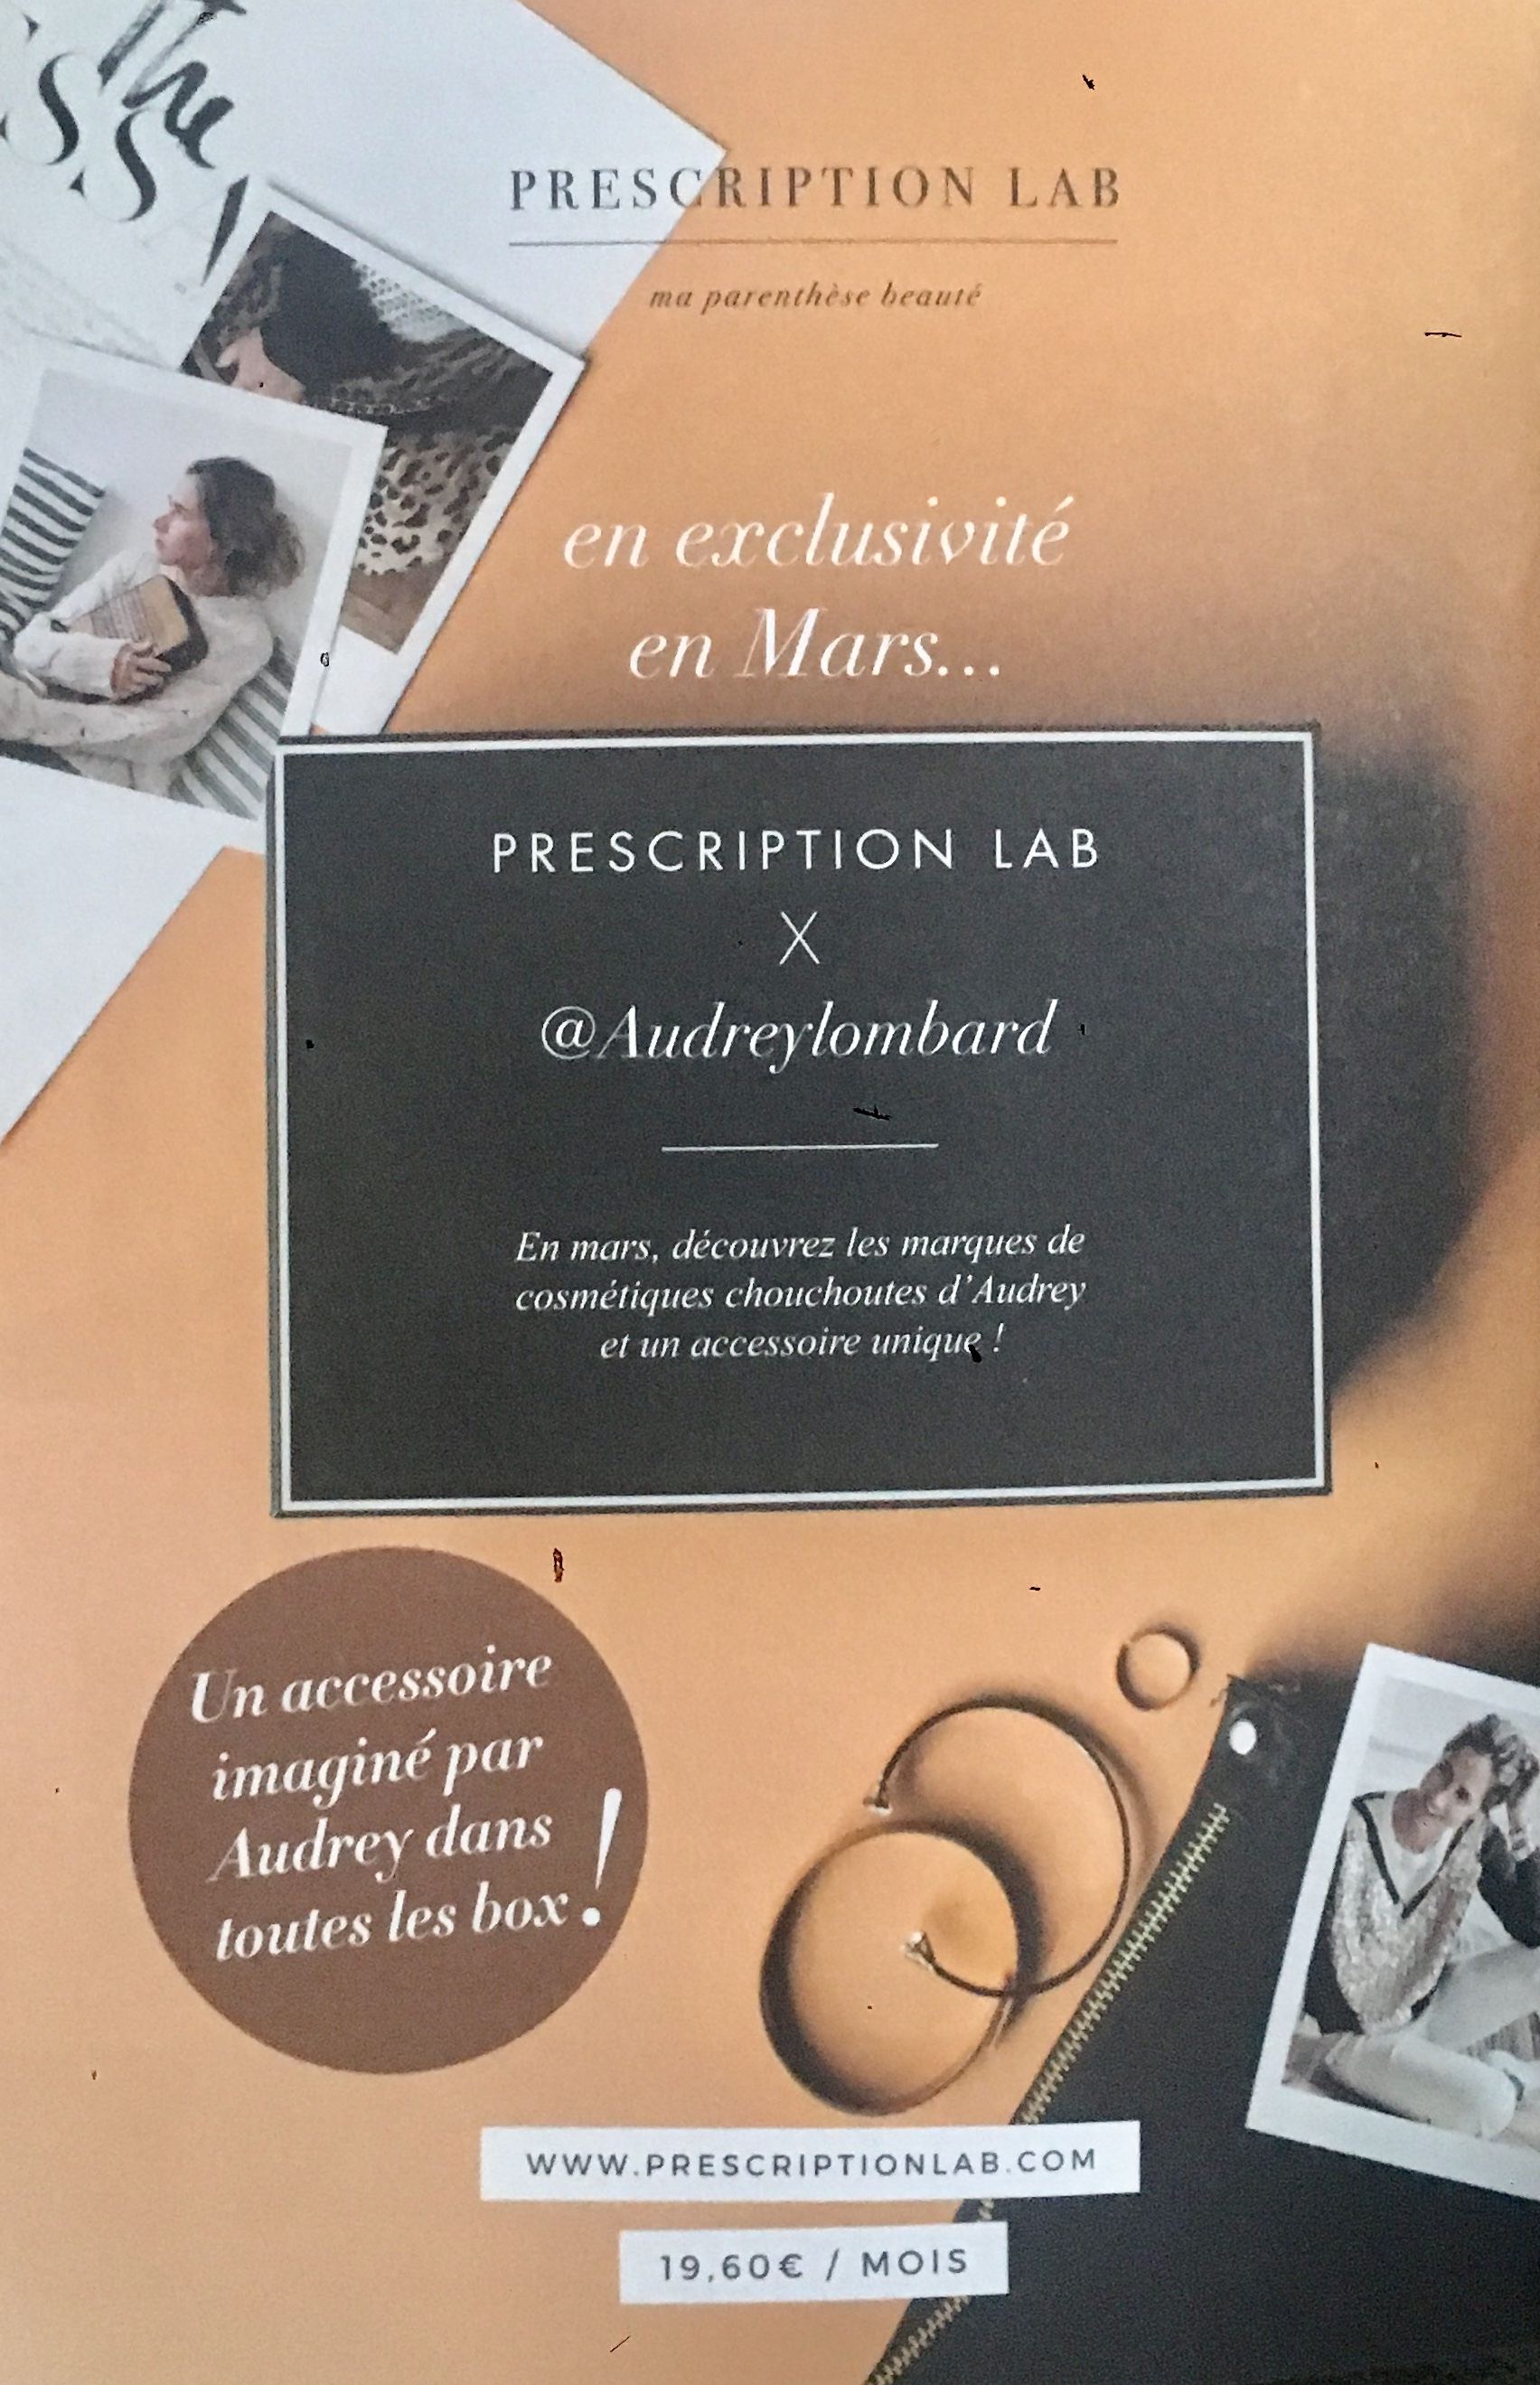 Prescription Lab de Mars 2018